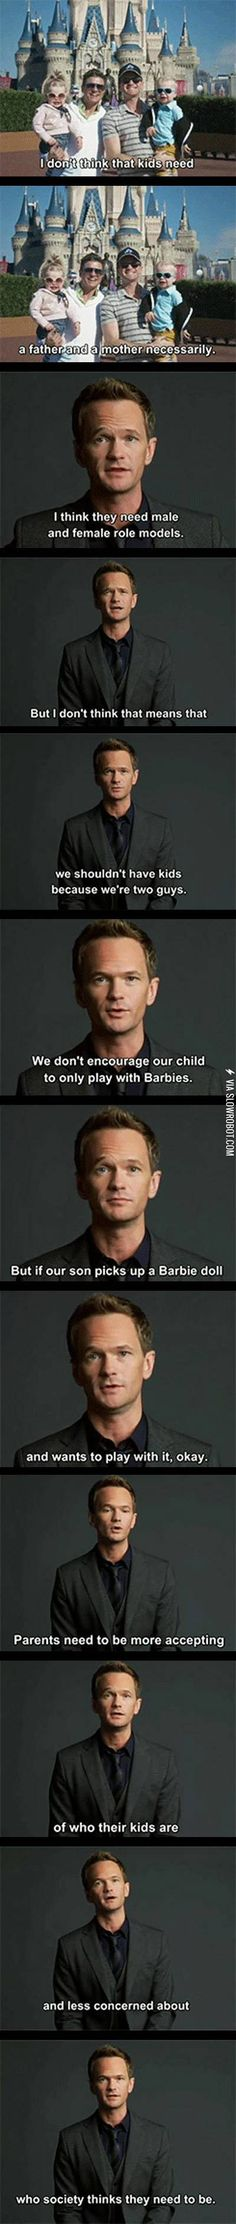 Neil Patrick Harris on parenting.